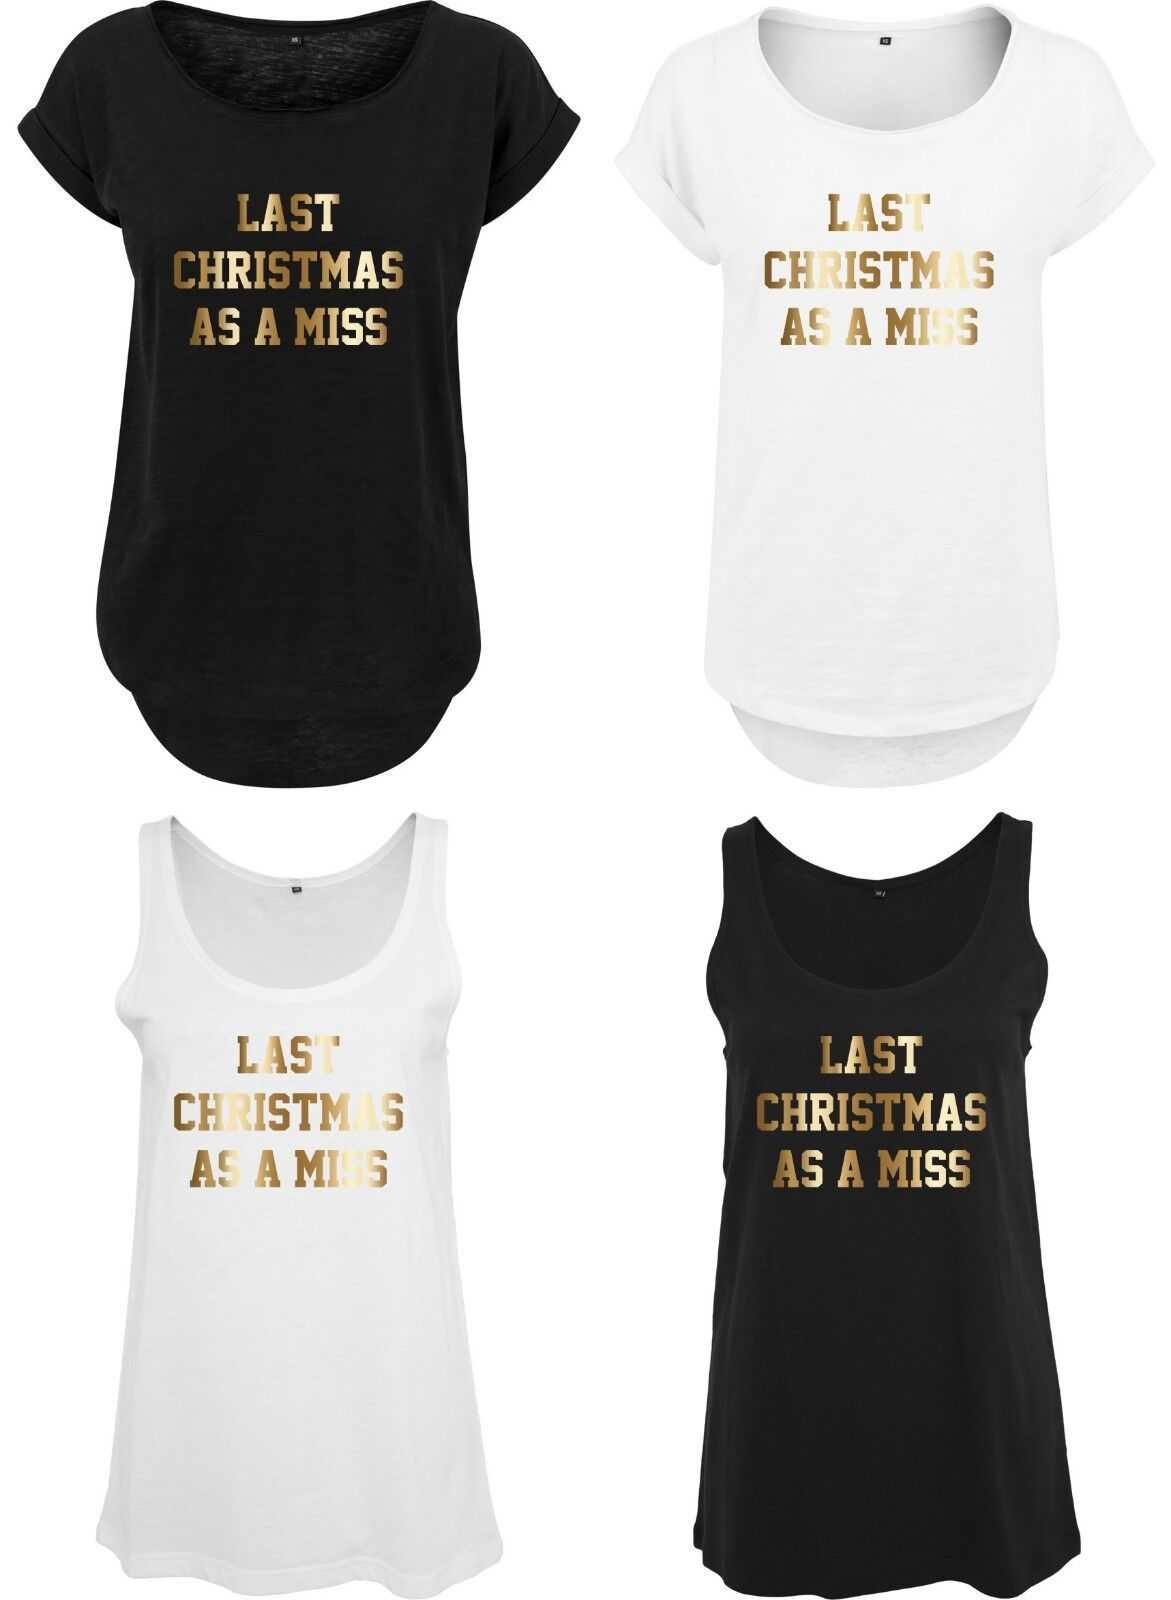 LAST CHRISTMAS AS A MISS Ladies T-Shirt Xmas Bride To Be Hen Wedding Gold